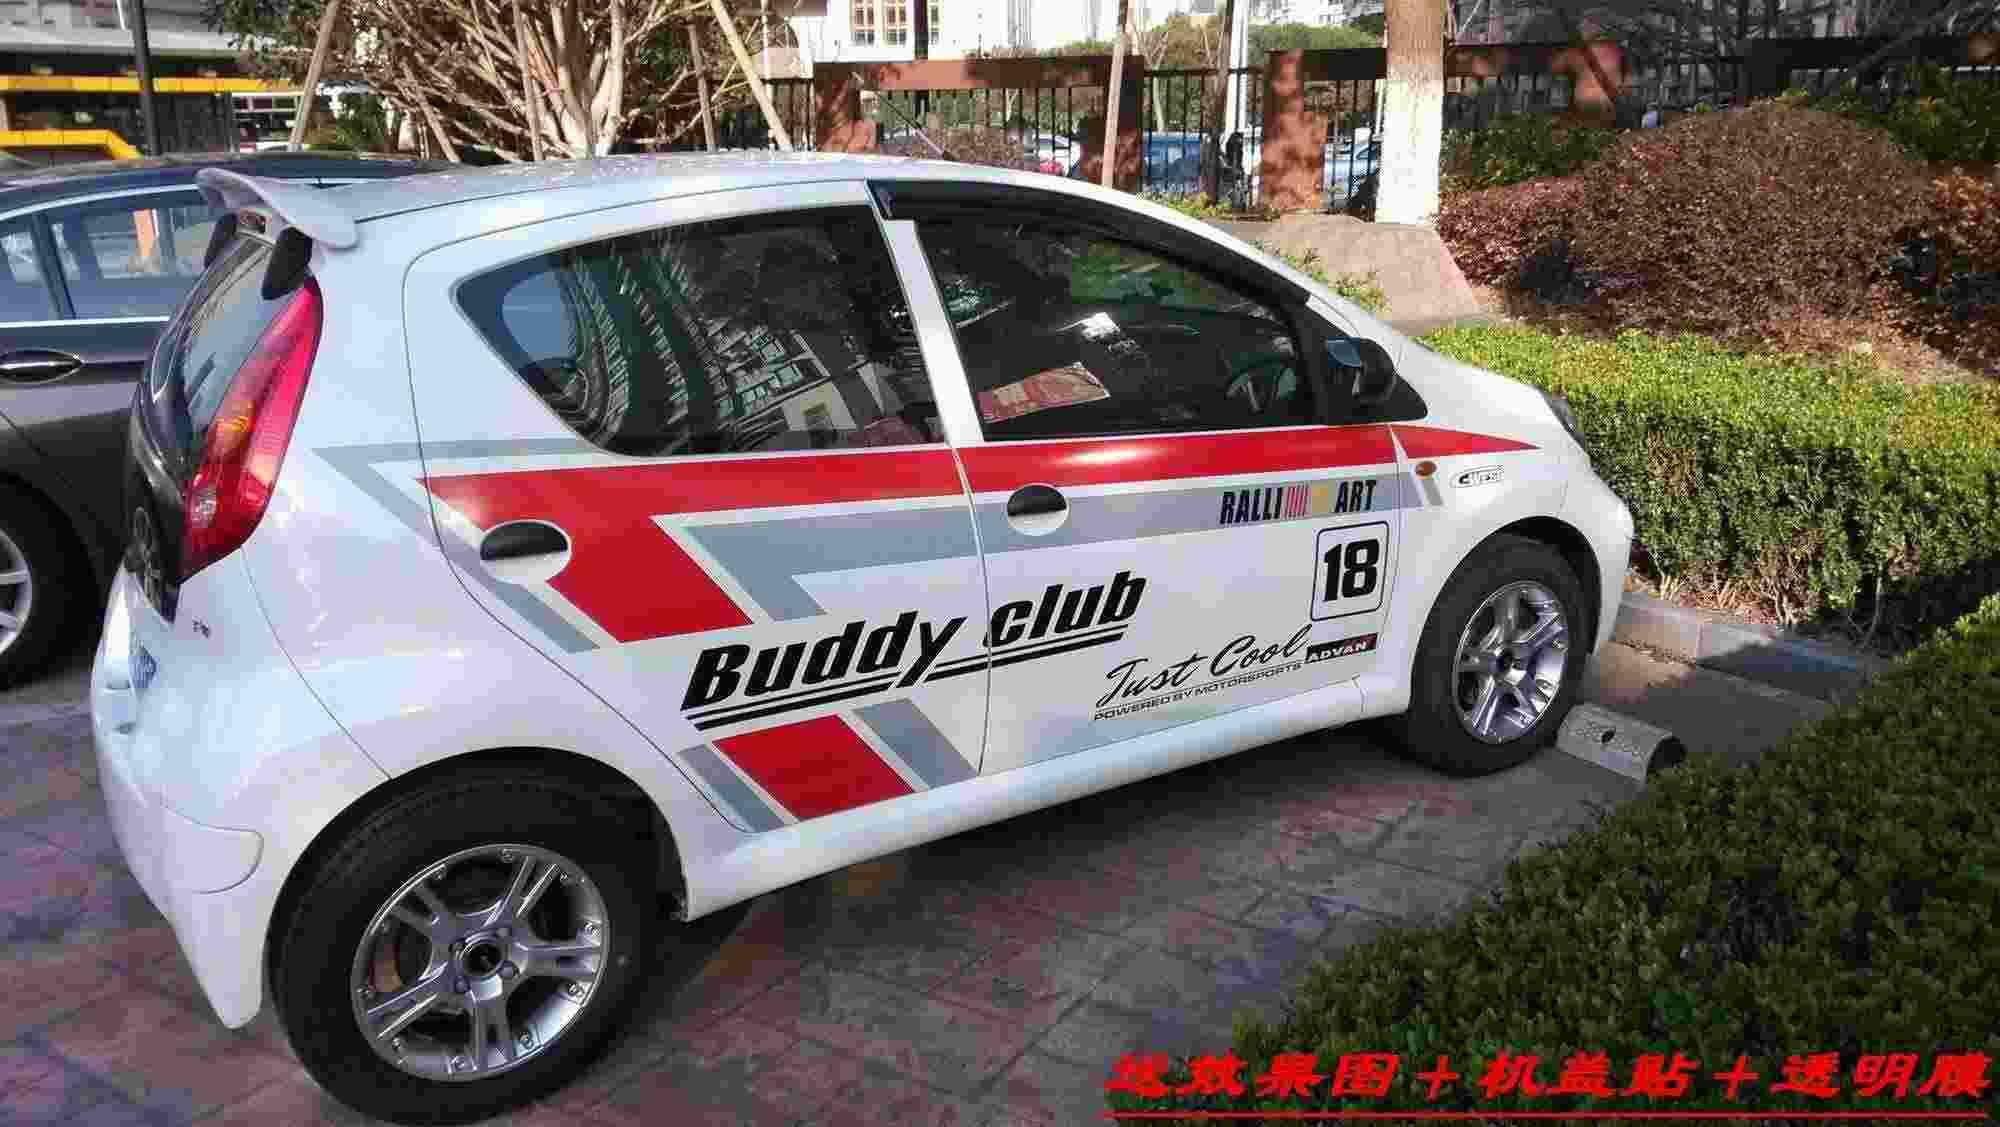 Byd byd byd f0 f0 car stickers garland modified sports car cartoon vehicle stickers fu023 auto parts sale auto parts sales from xwt5240 103 52 dhgate com